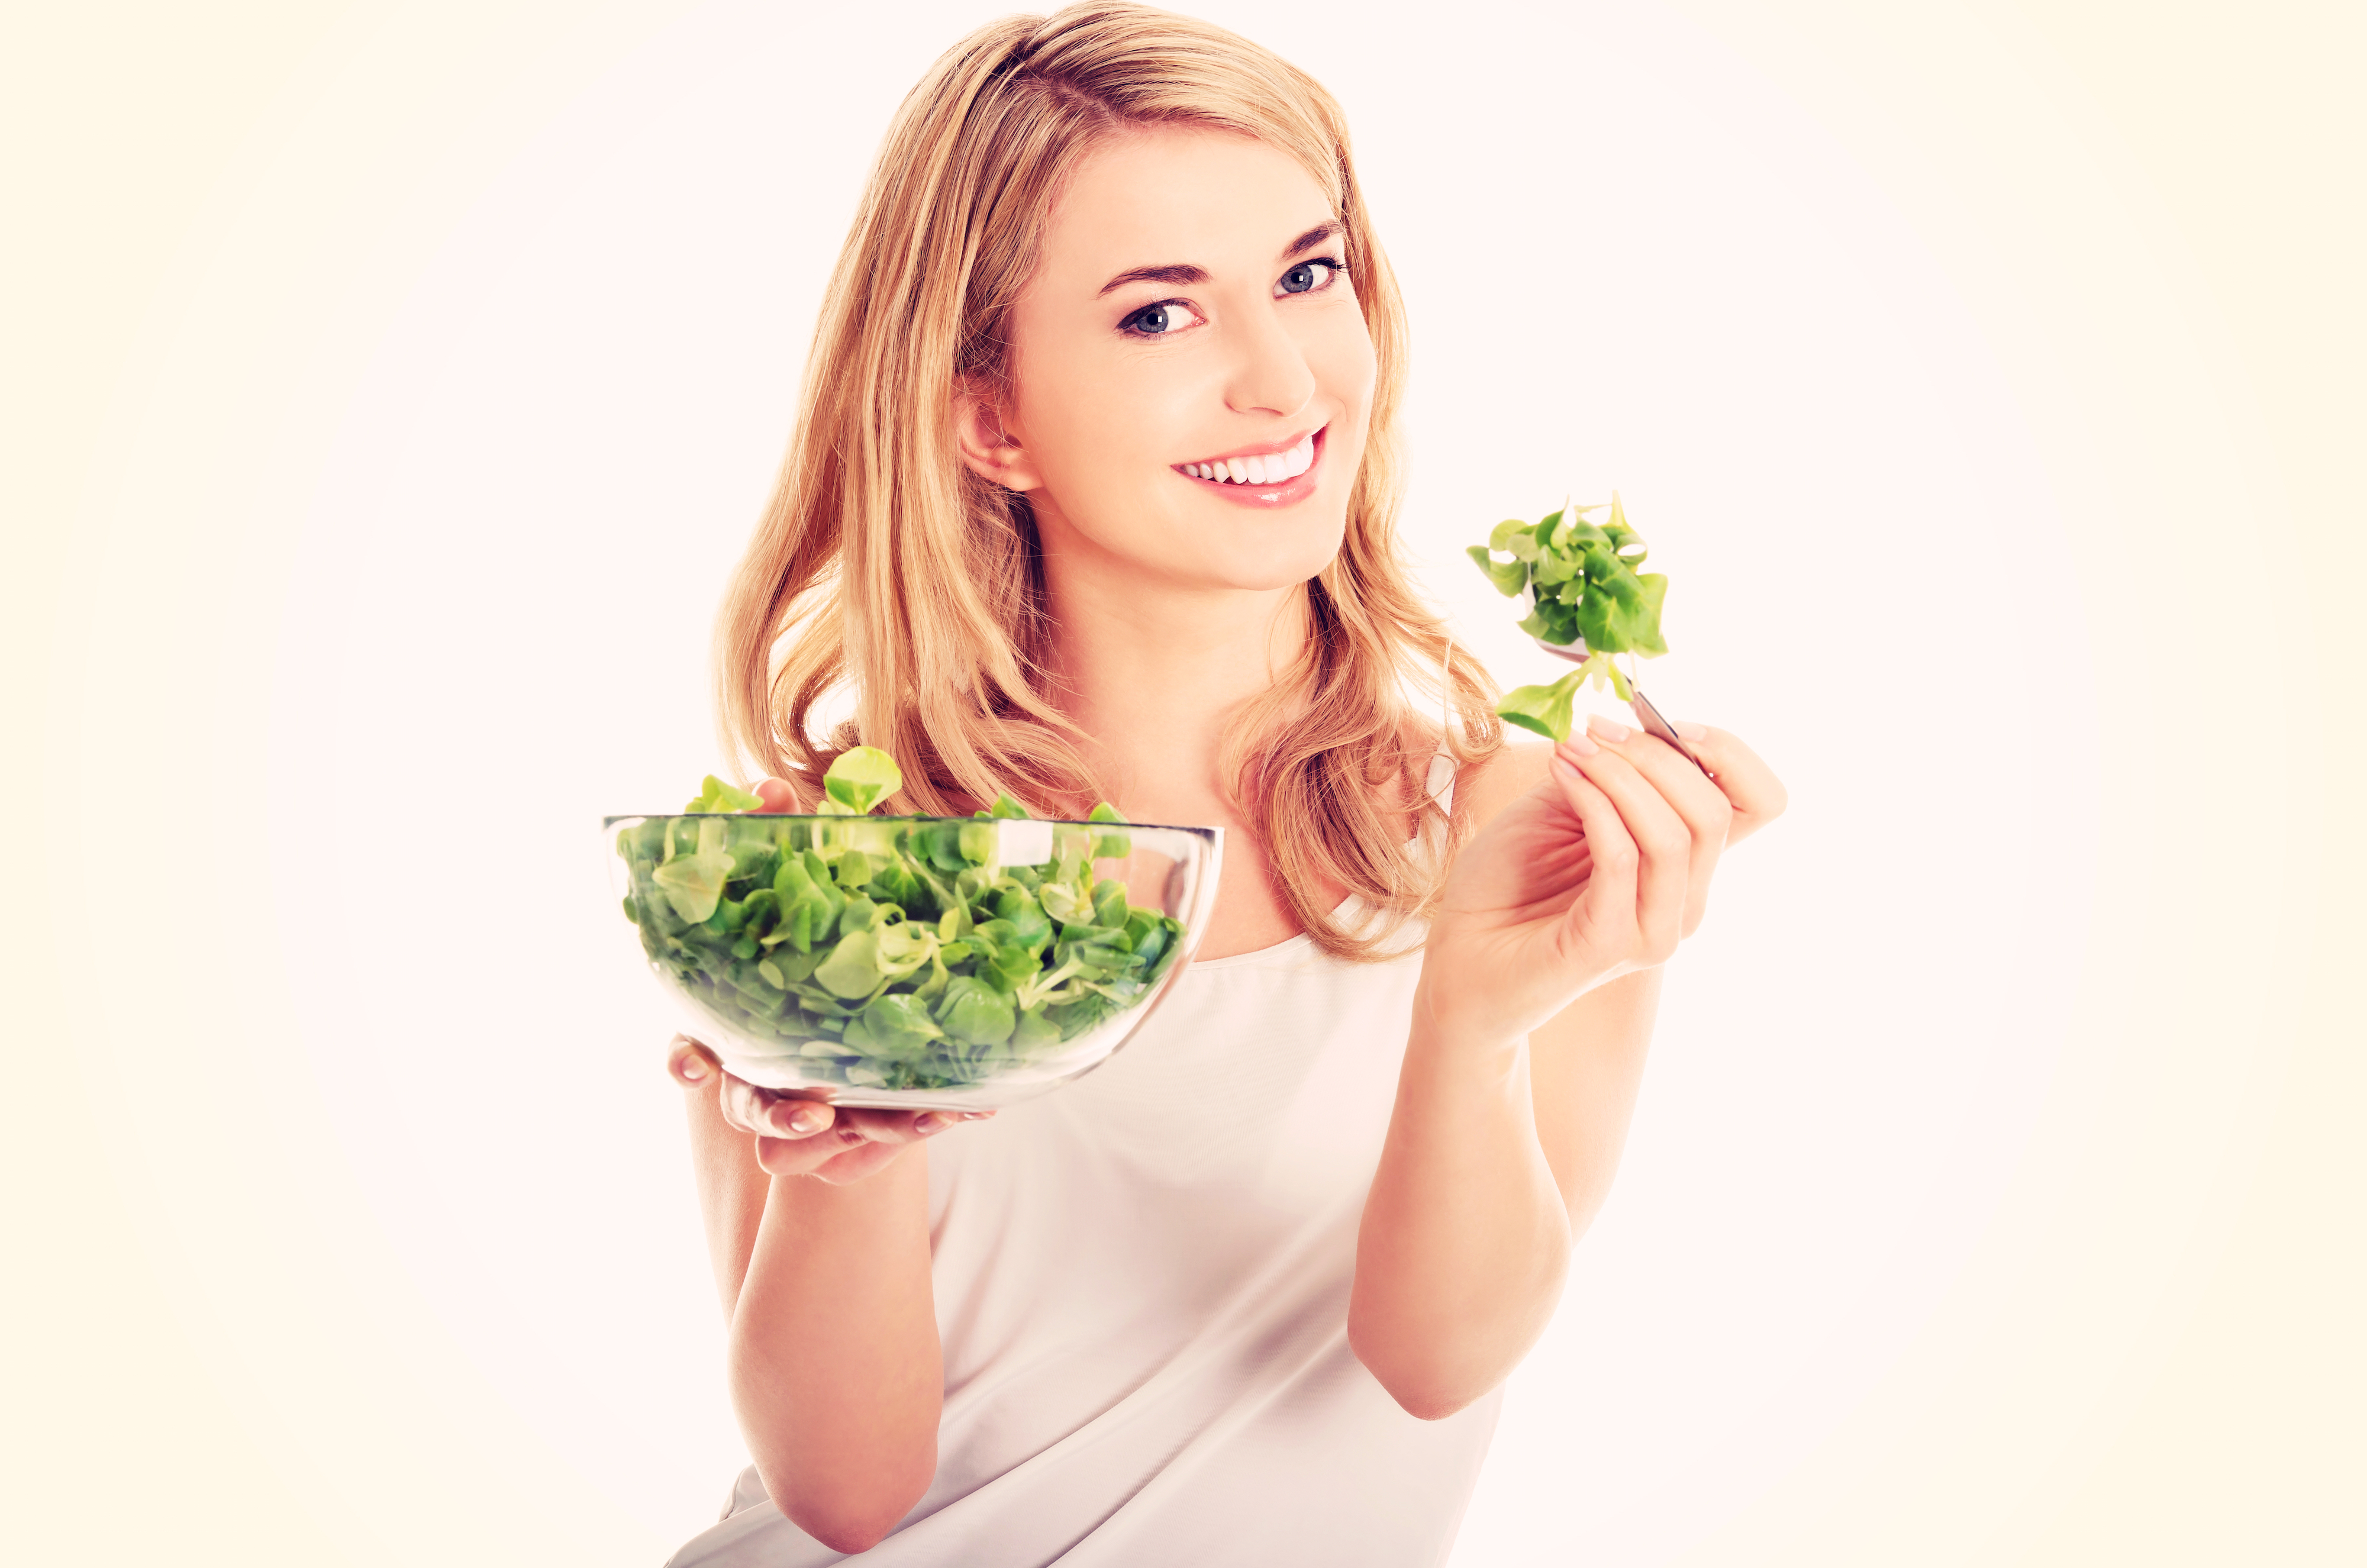 What Everyone Gets Wrong About Eating Healthy